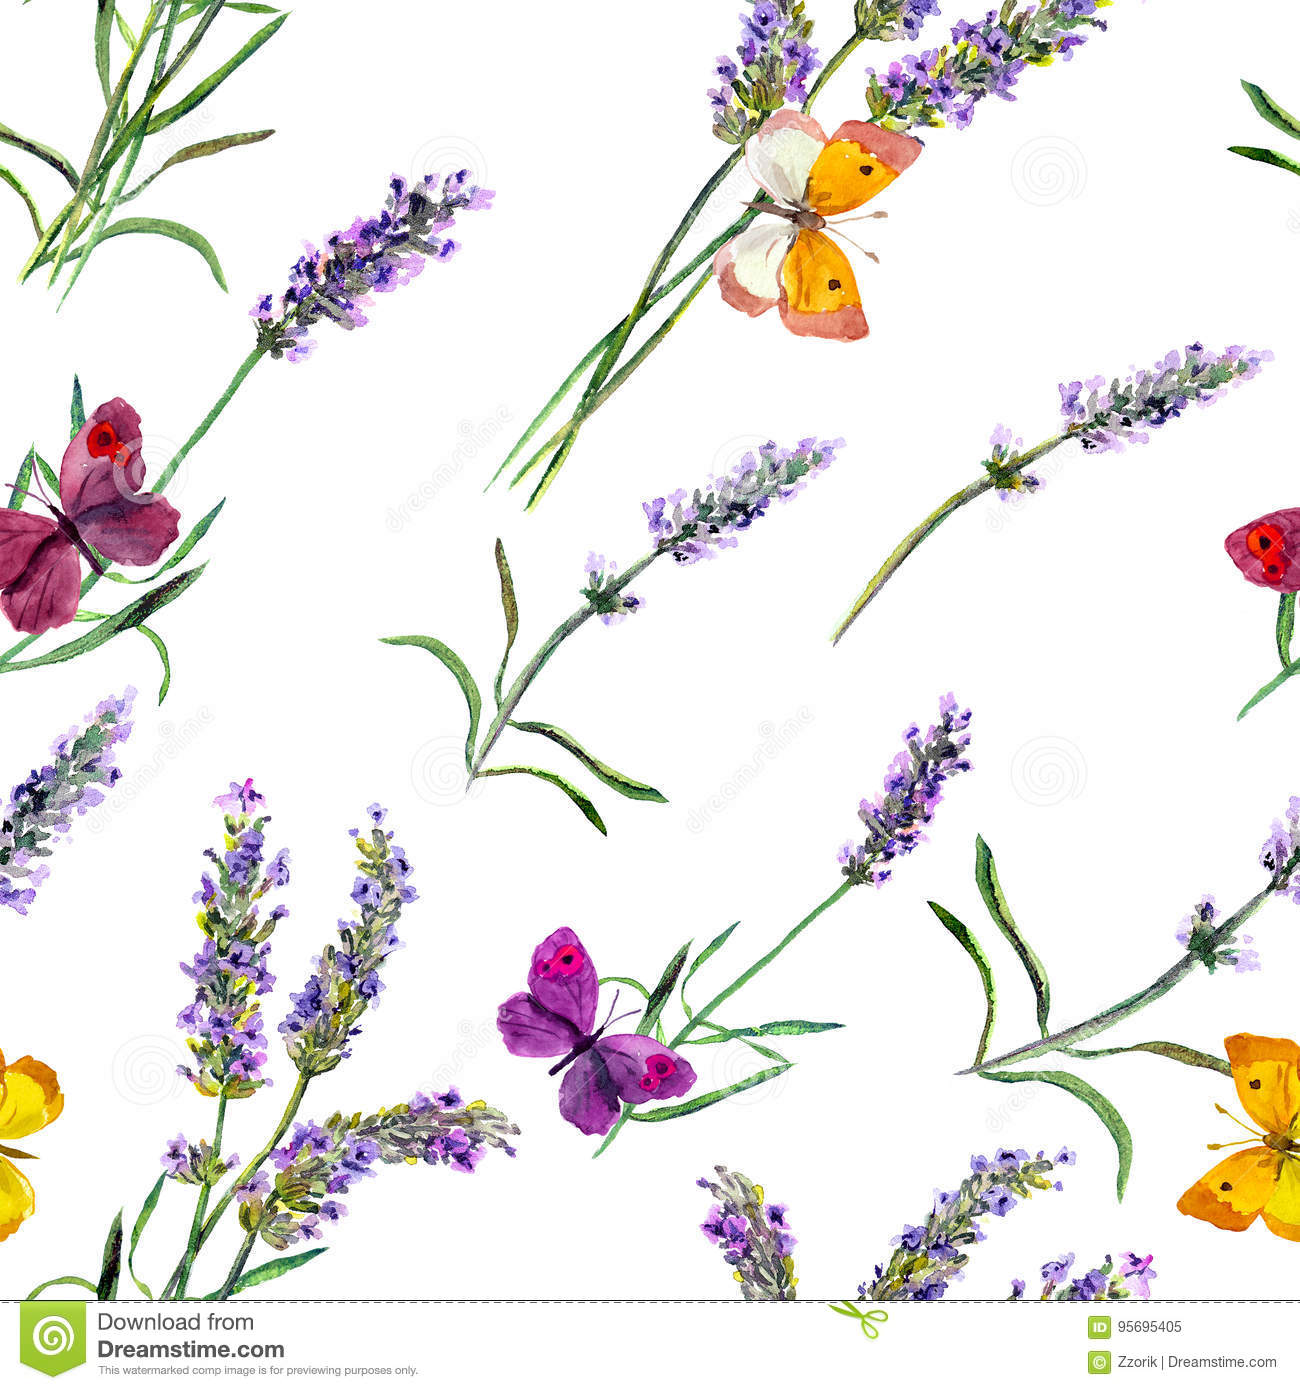 Lavender Flowers And Butterflies Seamless Wallpaper Watercolor